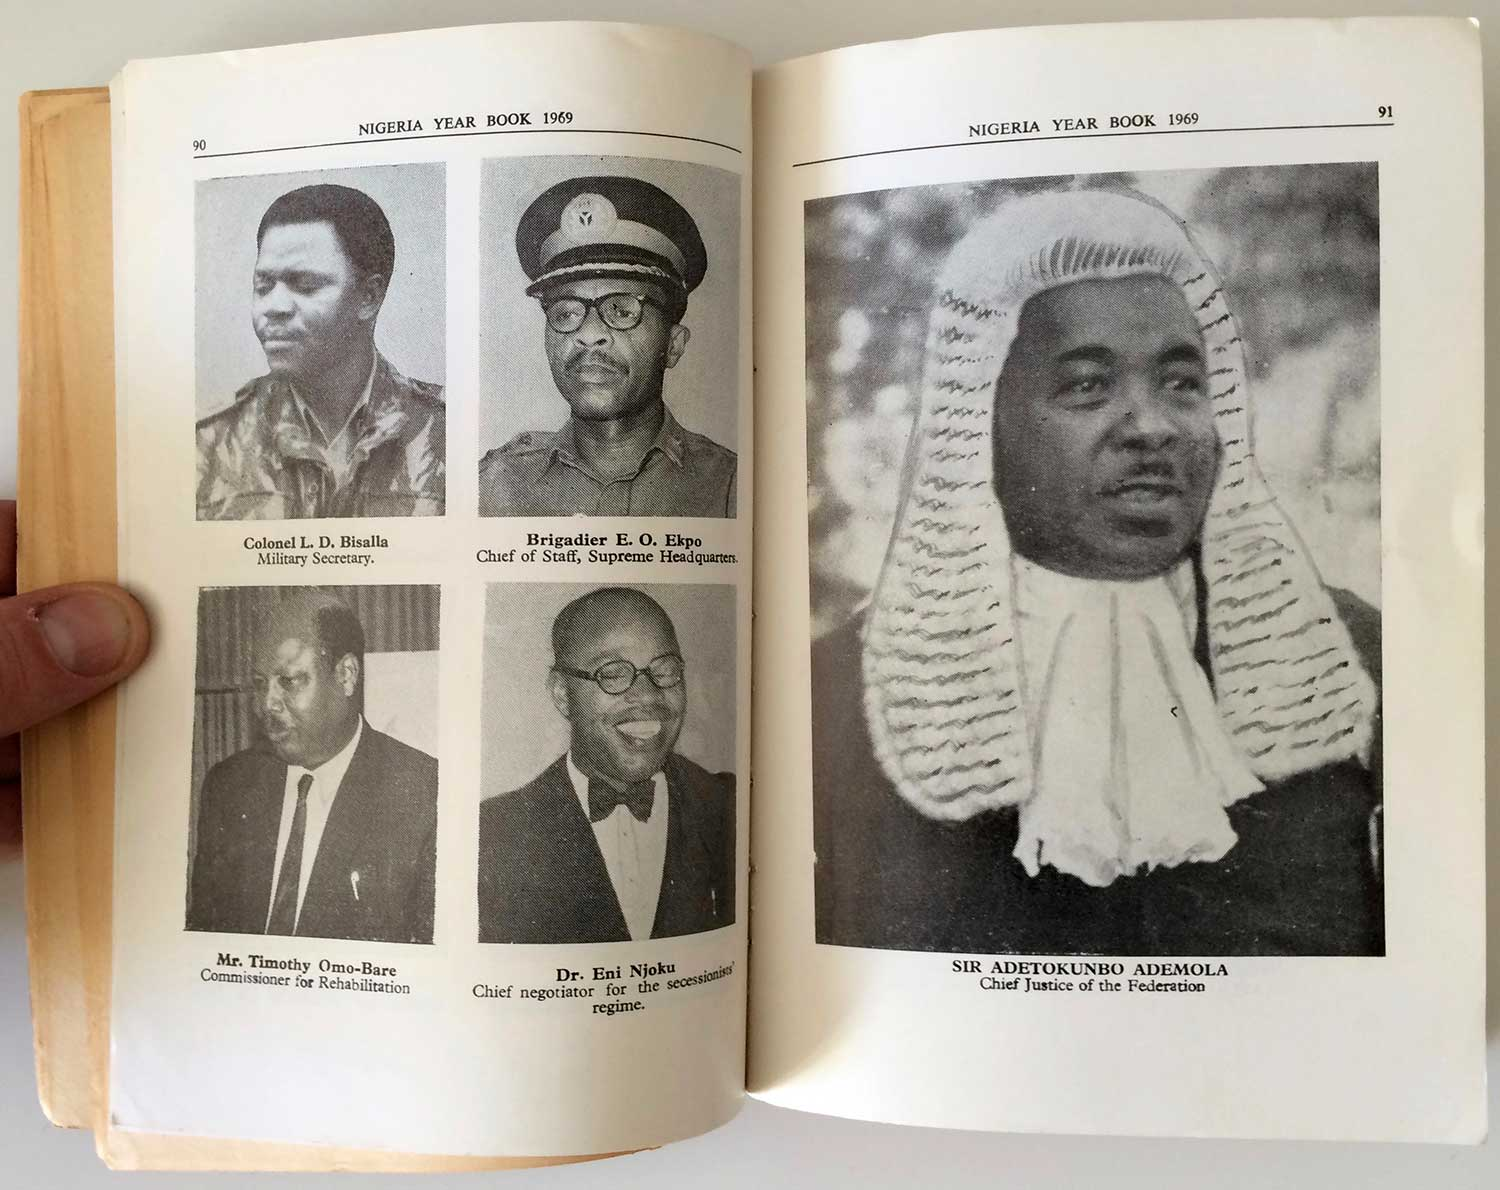 NigeriaYearbook69_inside07